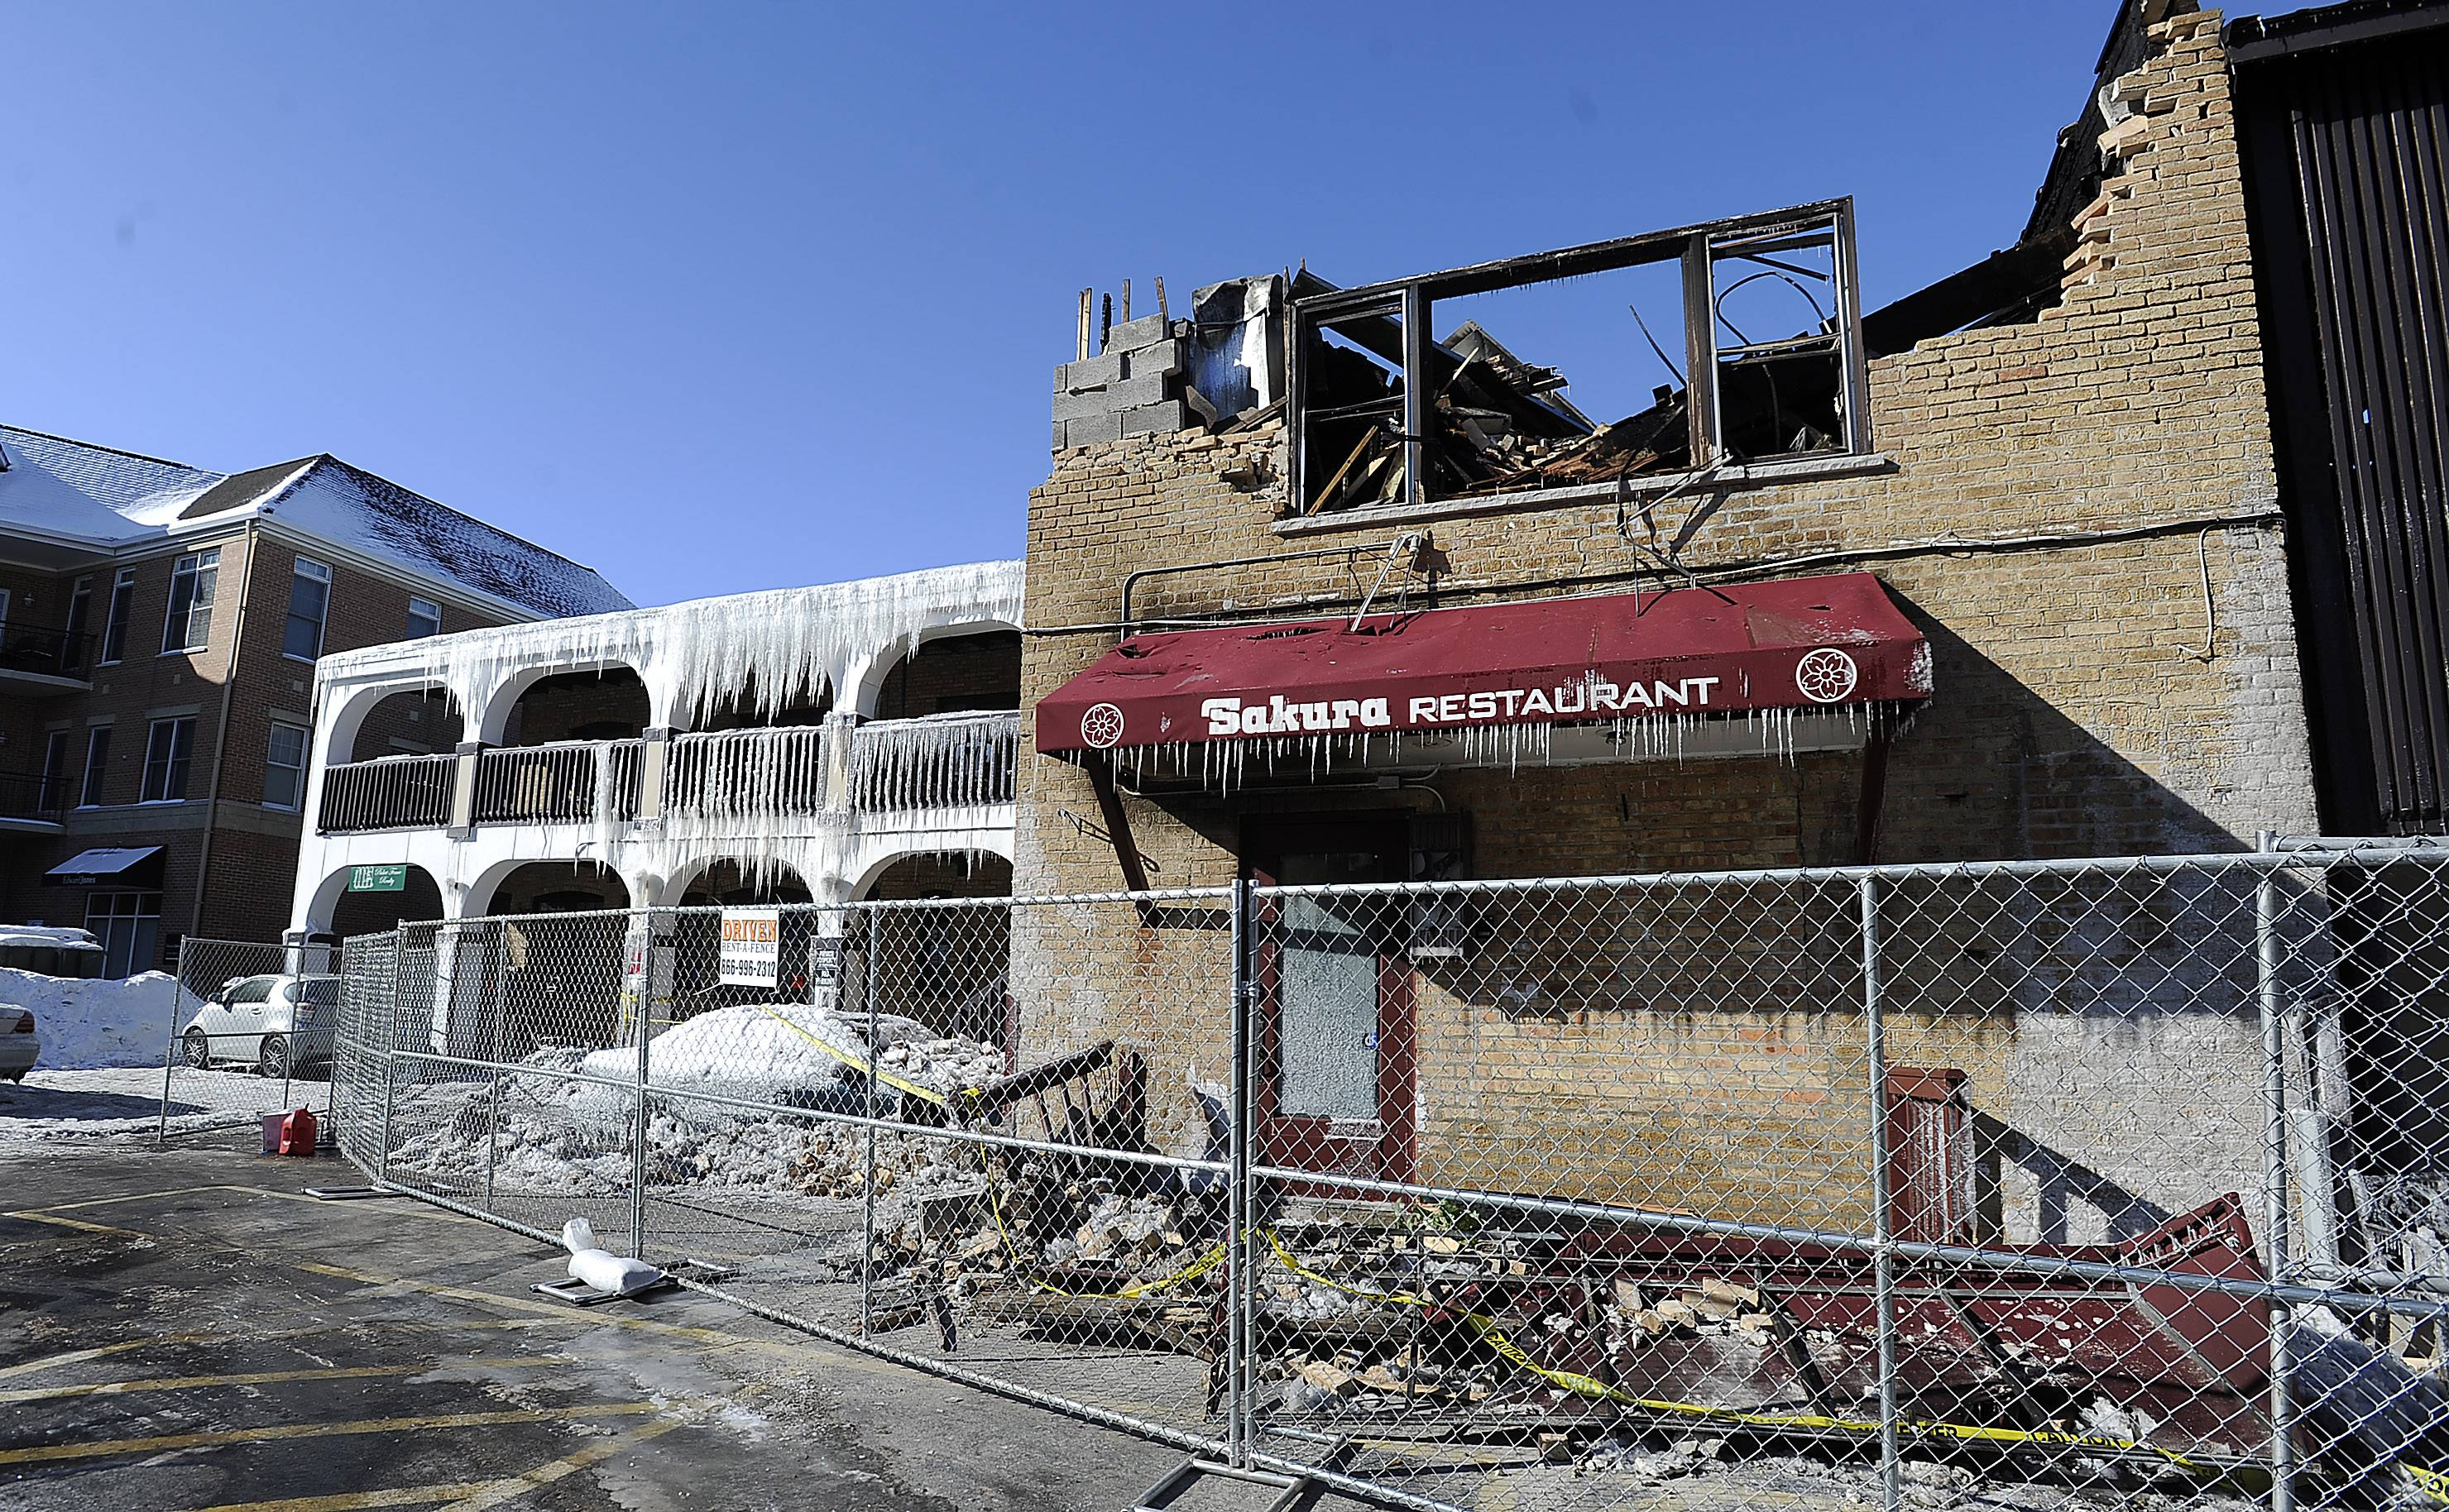 The Sakura Restaurant was one of the businesses hit hard by the weekend fire in a historic downtown Mount Prospect building. Village officials said Tuesday at least part of the building will have to be demolished because of the fire, the cause of which remains under investigation.